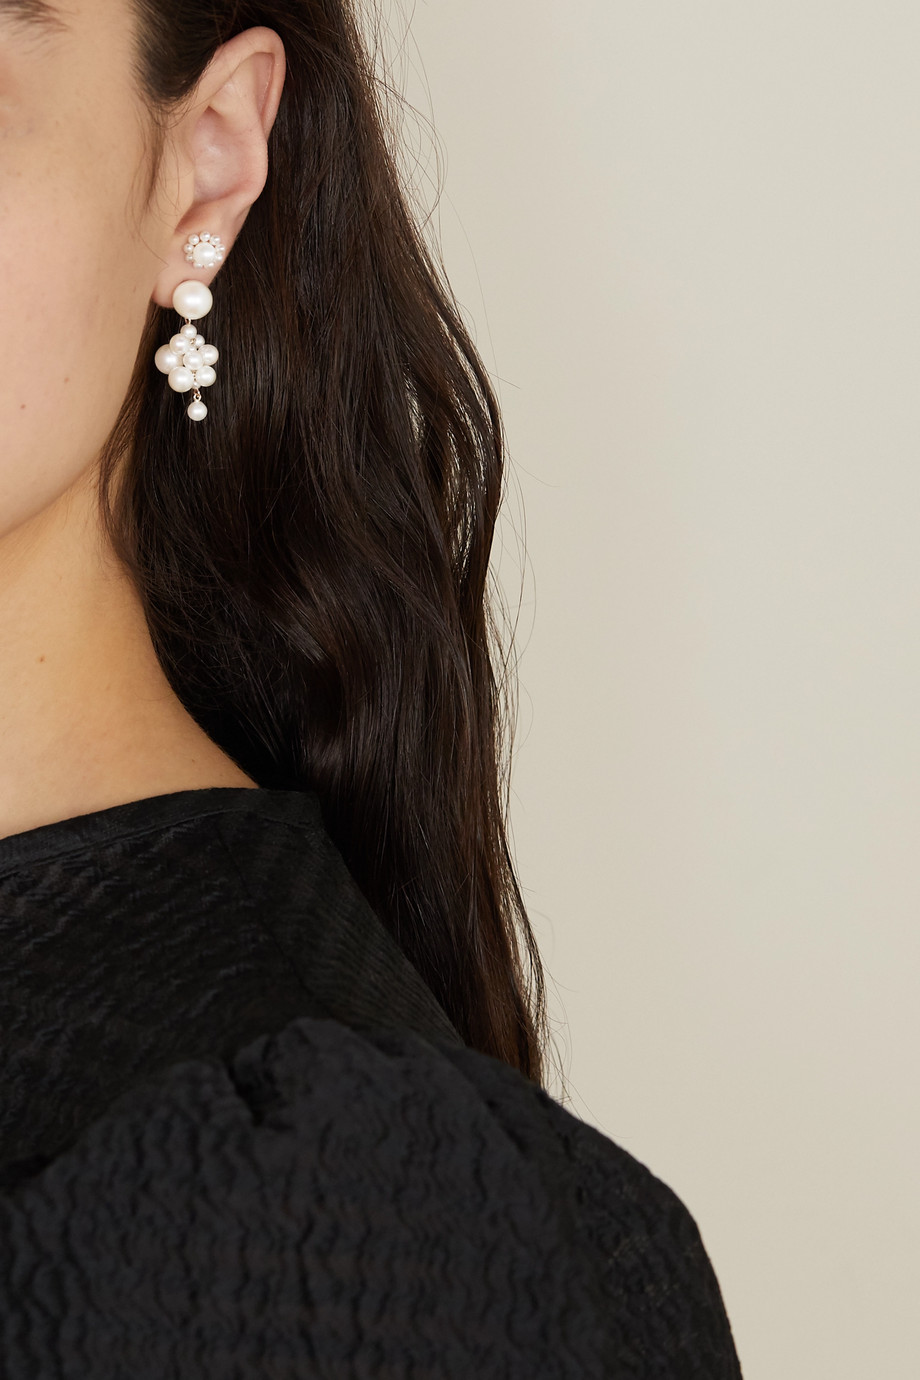 Sophie Bille Brahe Botticelli 14-karat gold pearl earrings